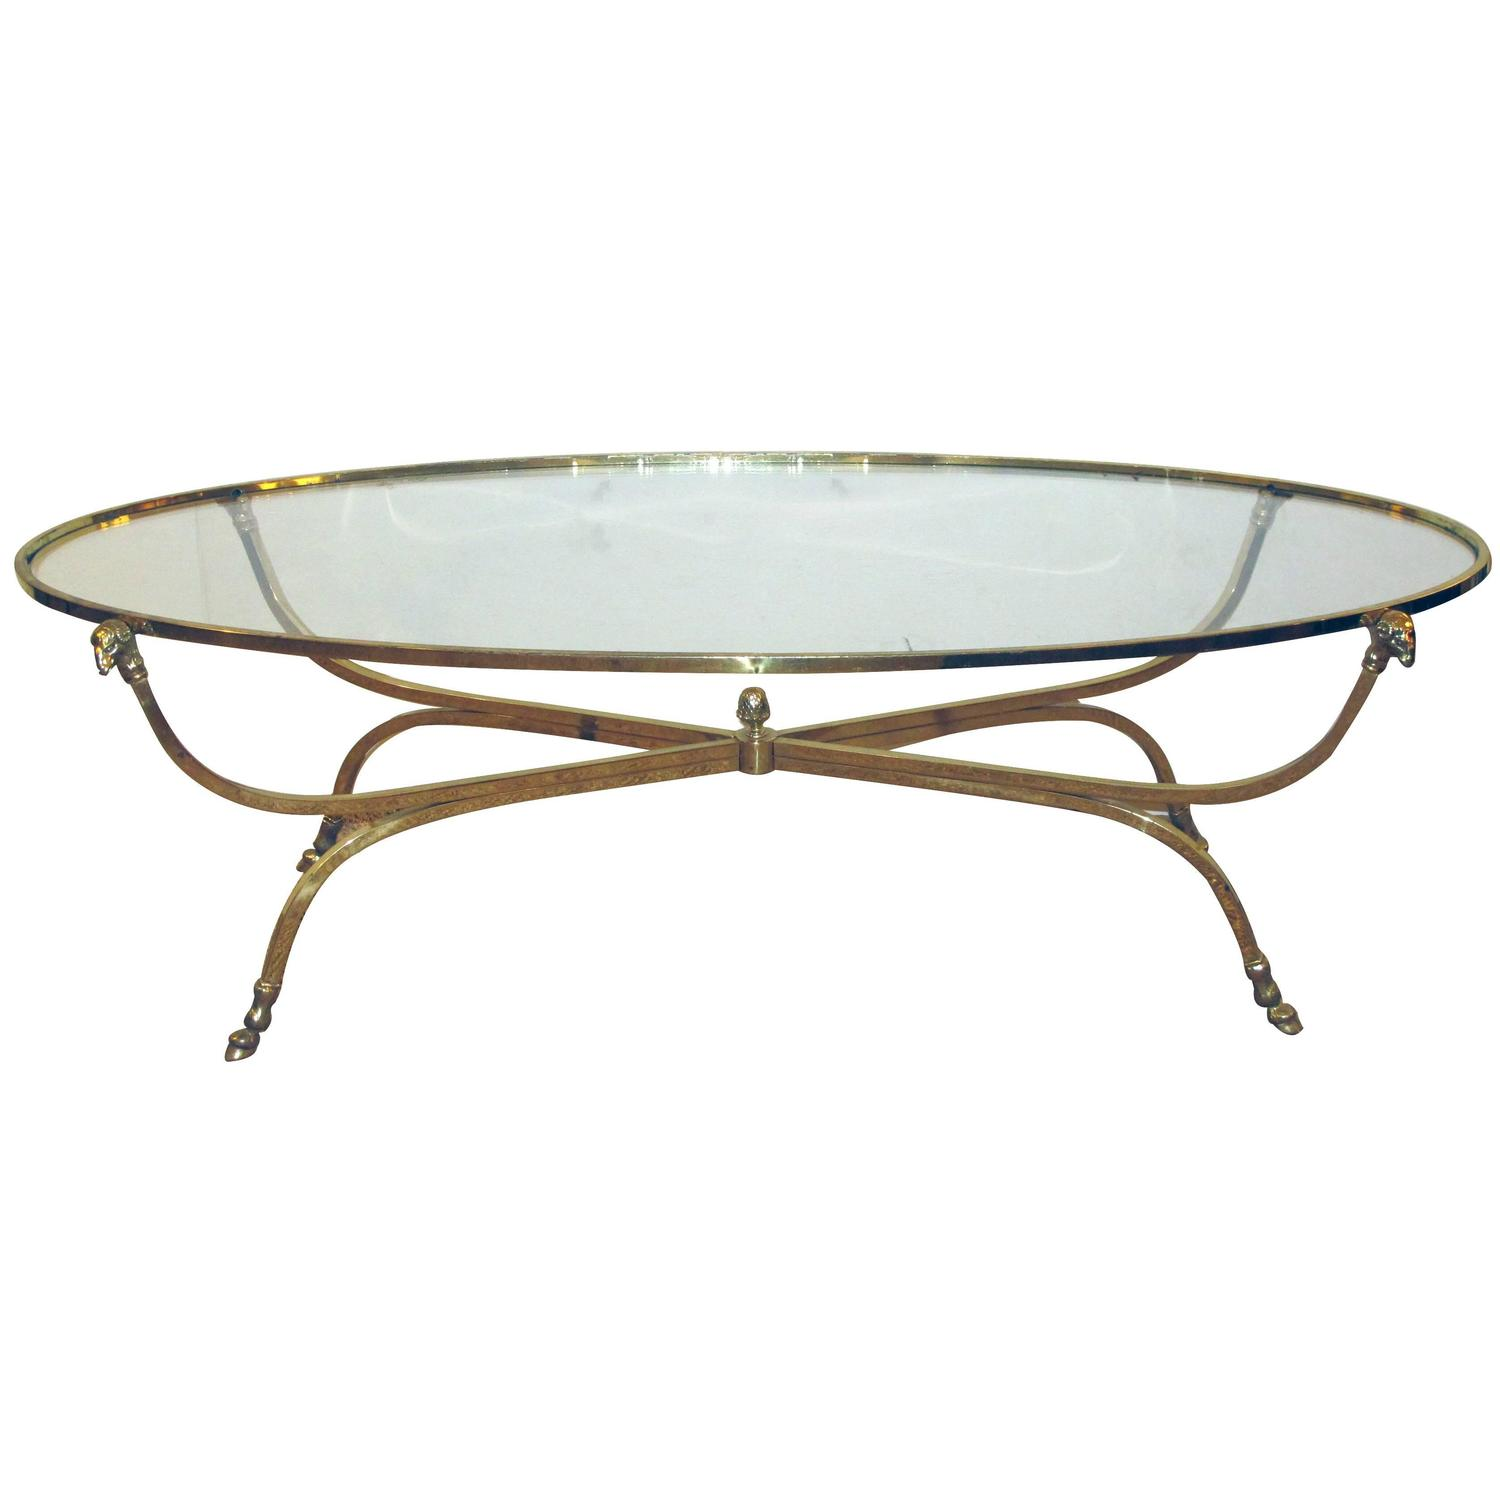 French Oval Coffee Table: Quality French Brass Oval Coffee Table With Glass Top, By